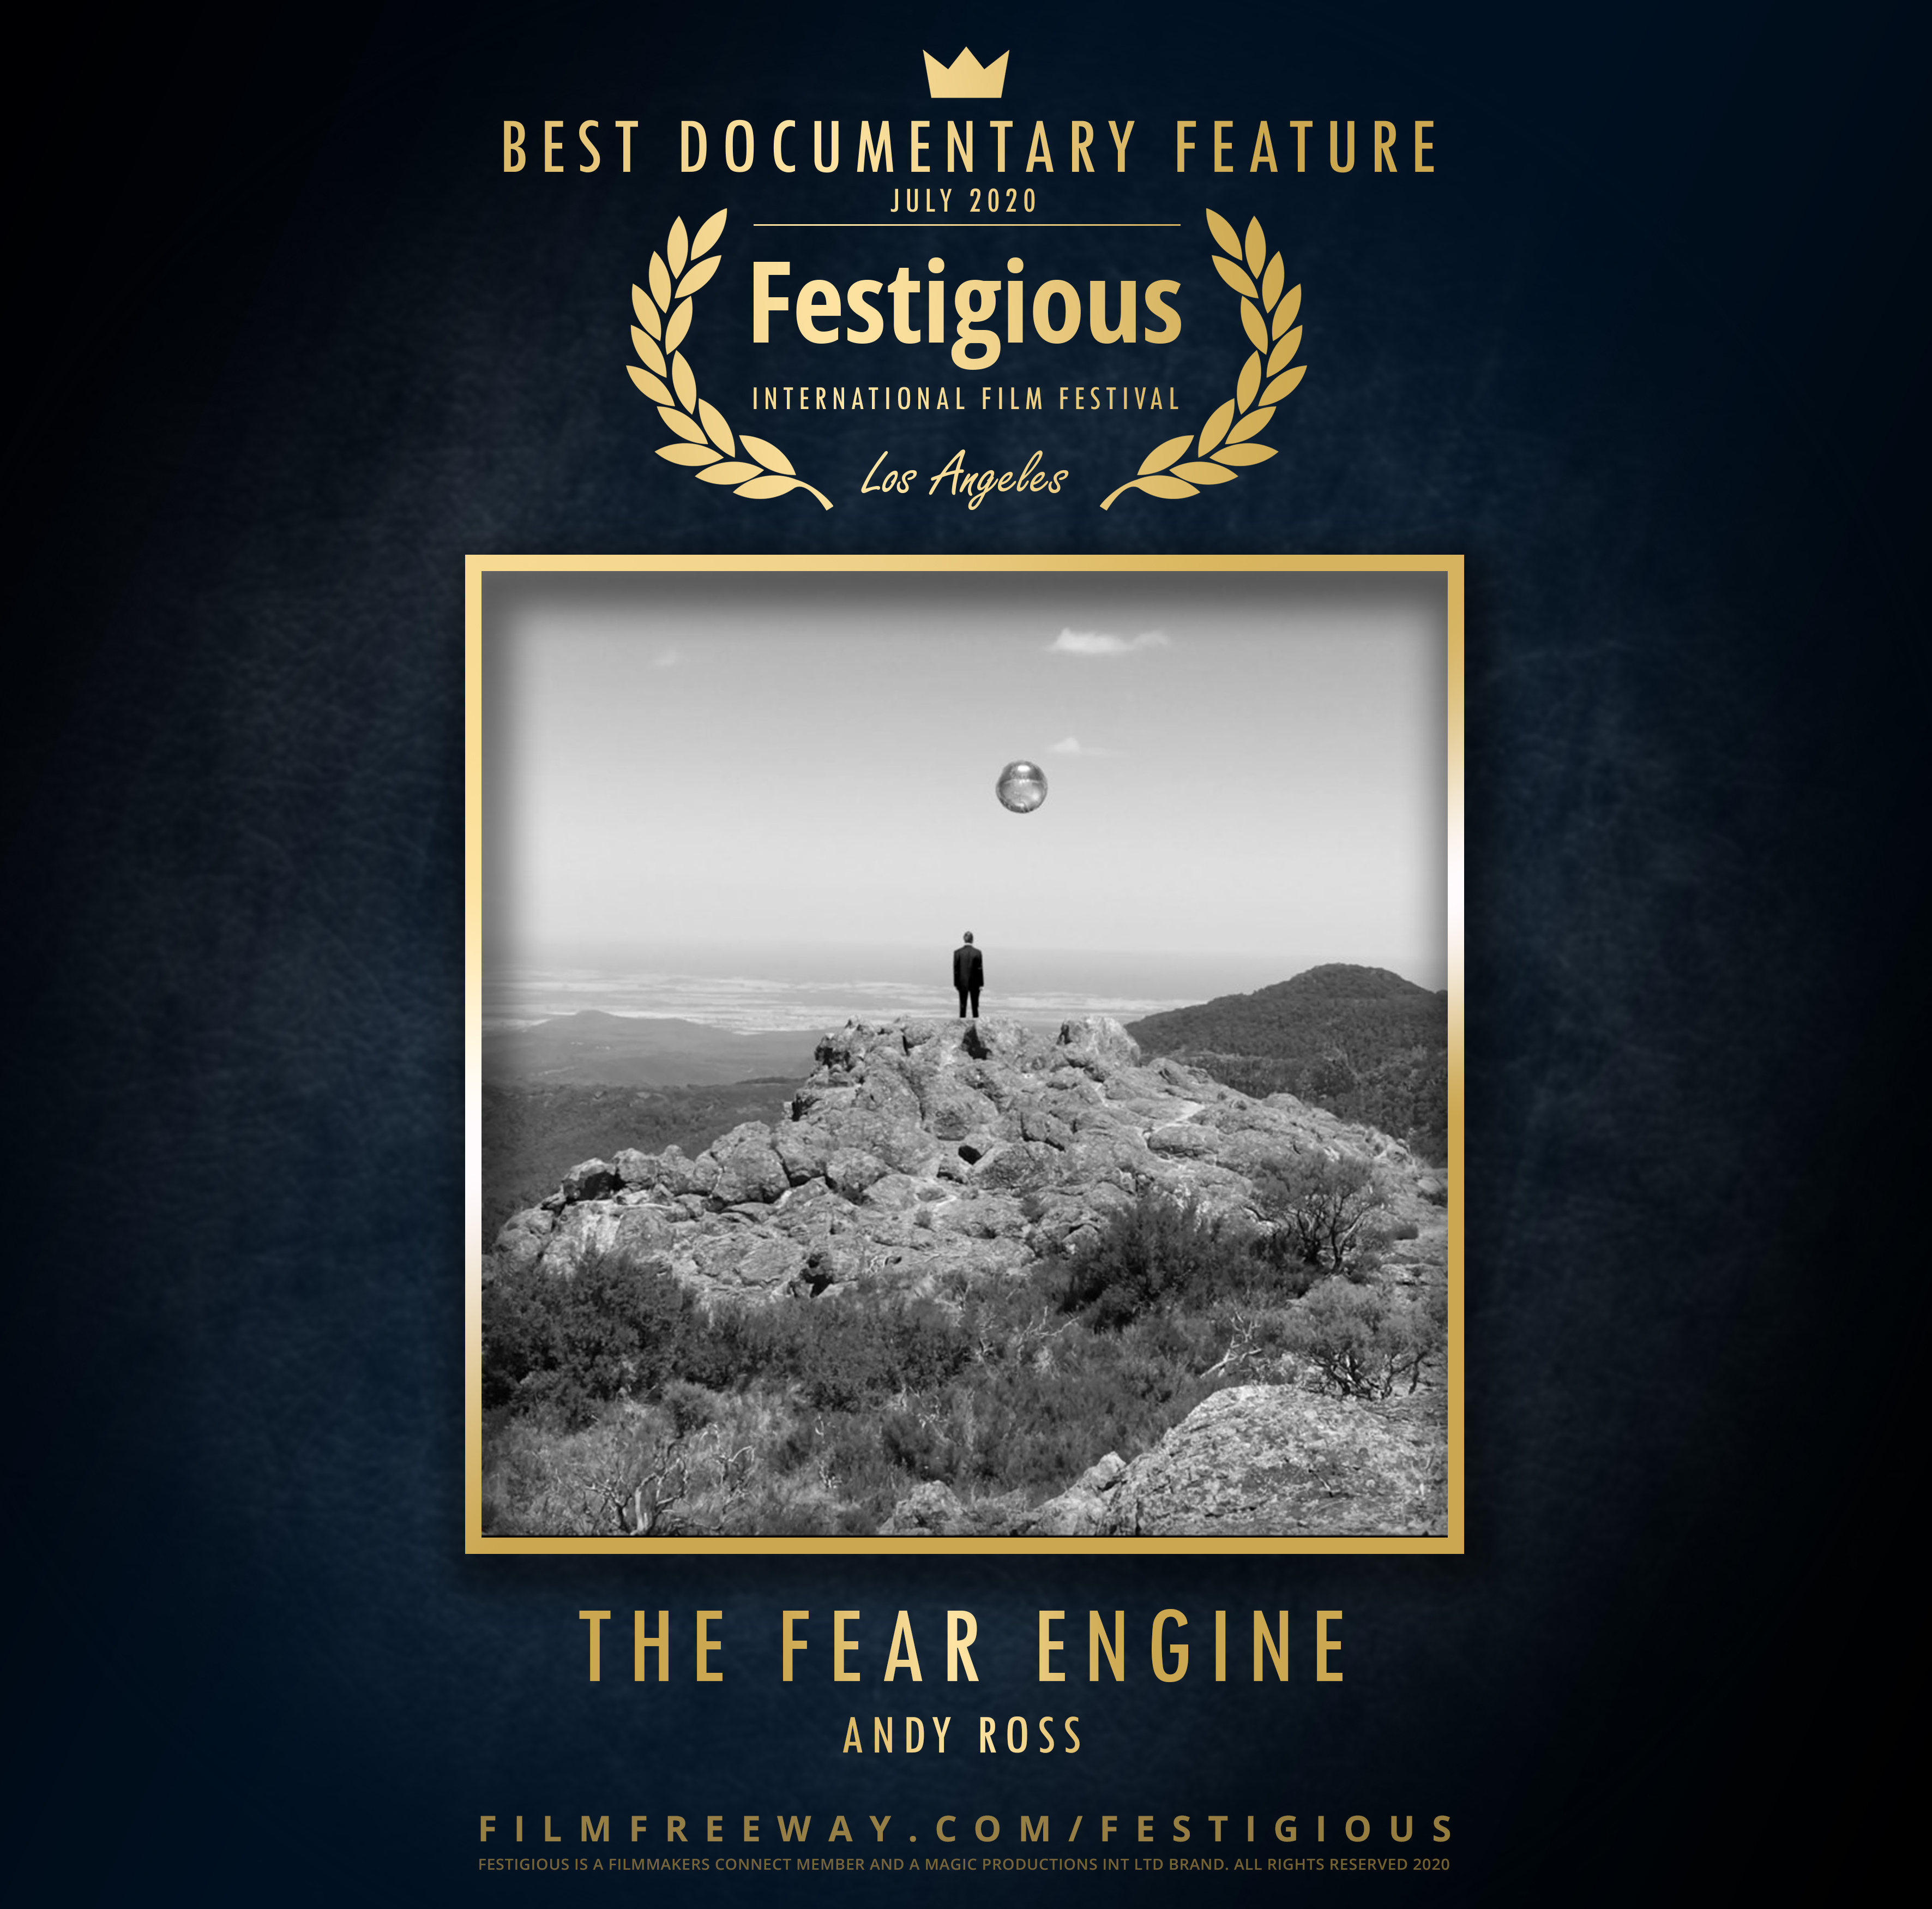 The Fear Engine design